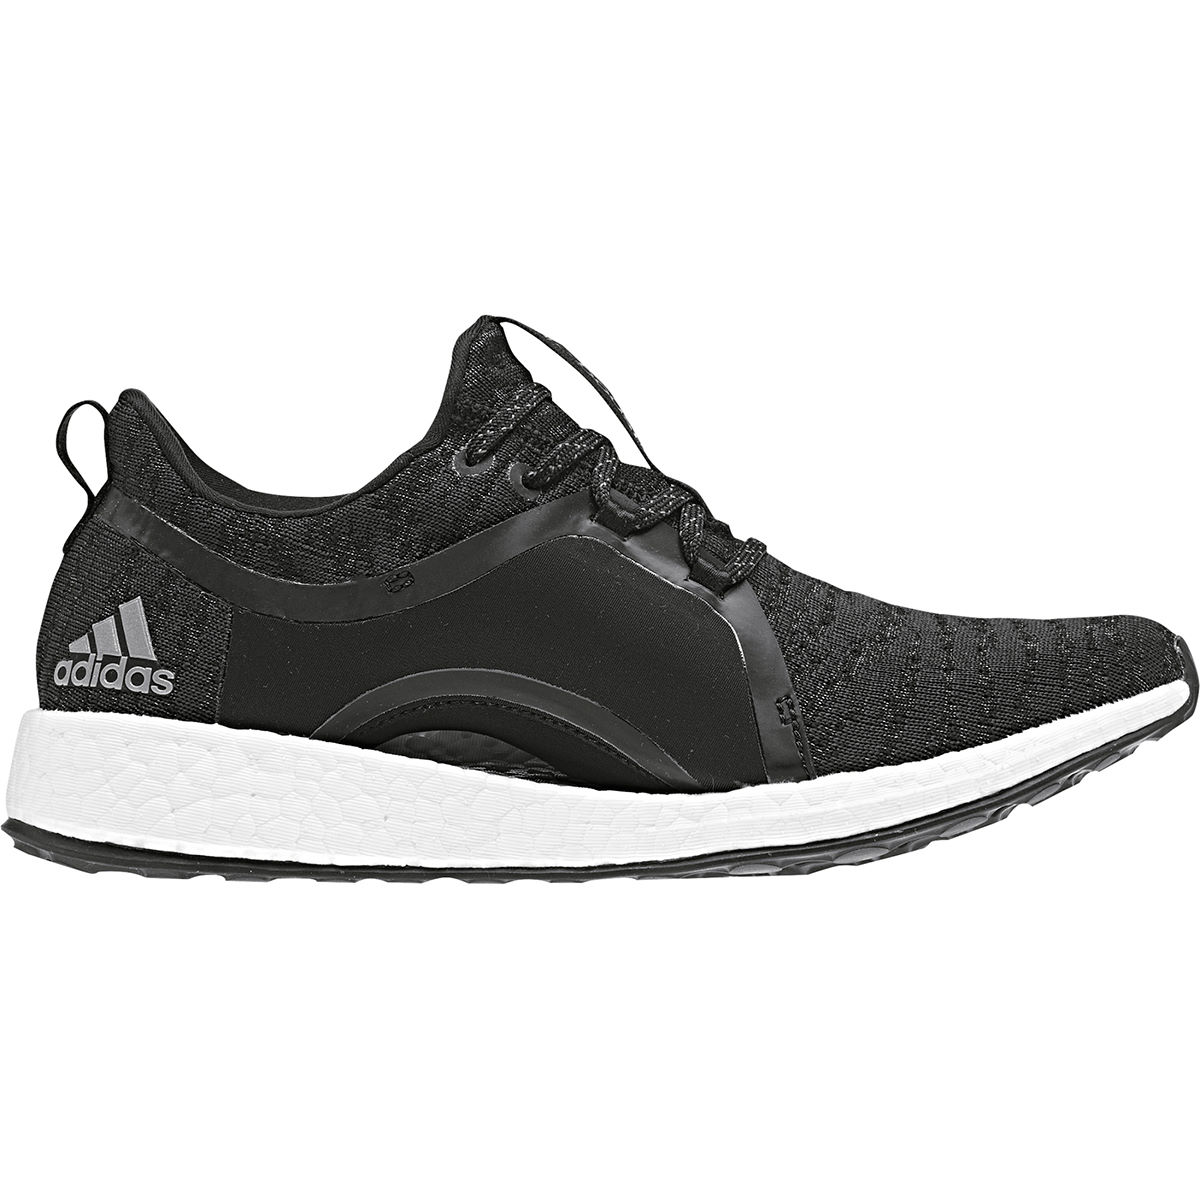 Chaussures Femme adidas PureBOOST X - 5 CARBON S18/SILVER ME